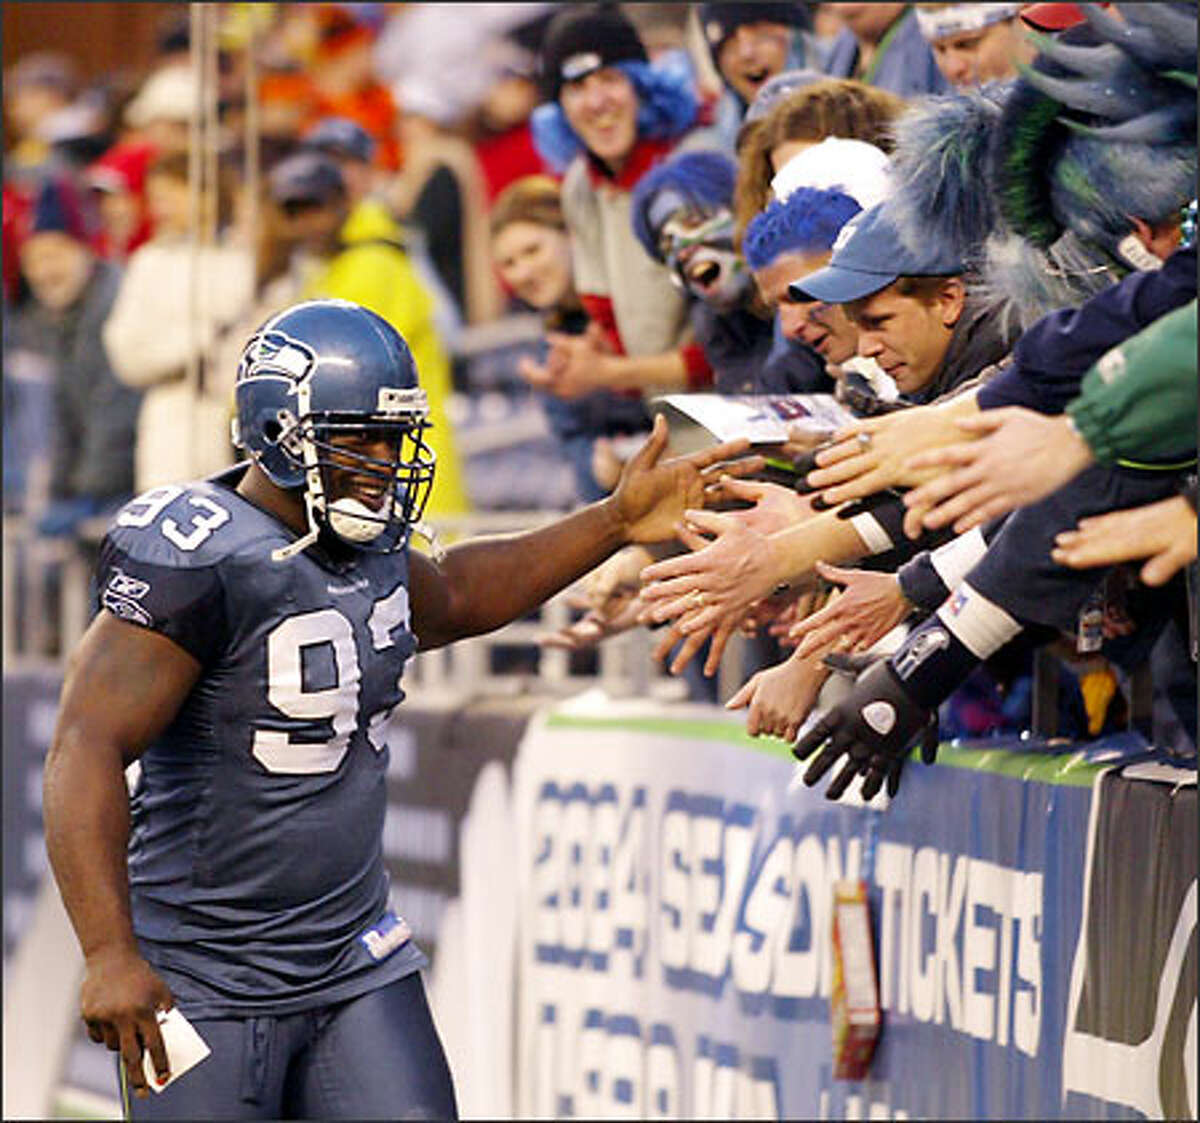 Tackle John Randle greets the fans after a dominating performance by the defense.